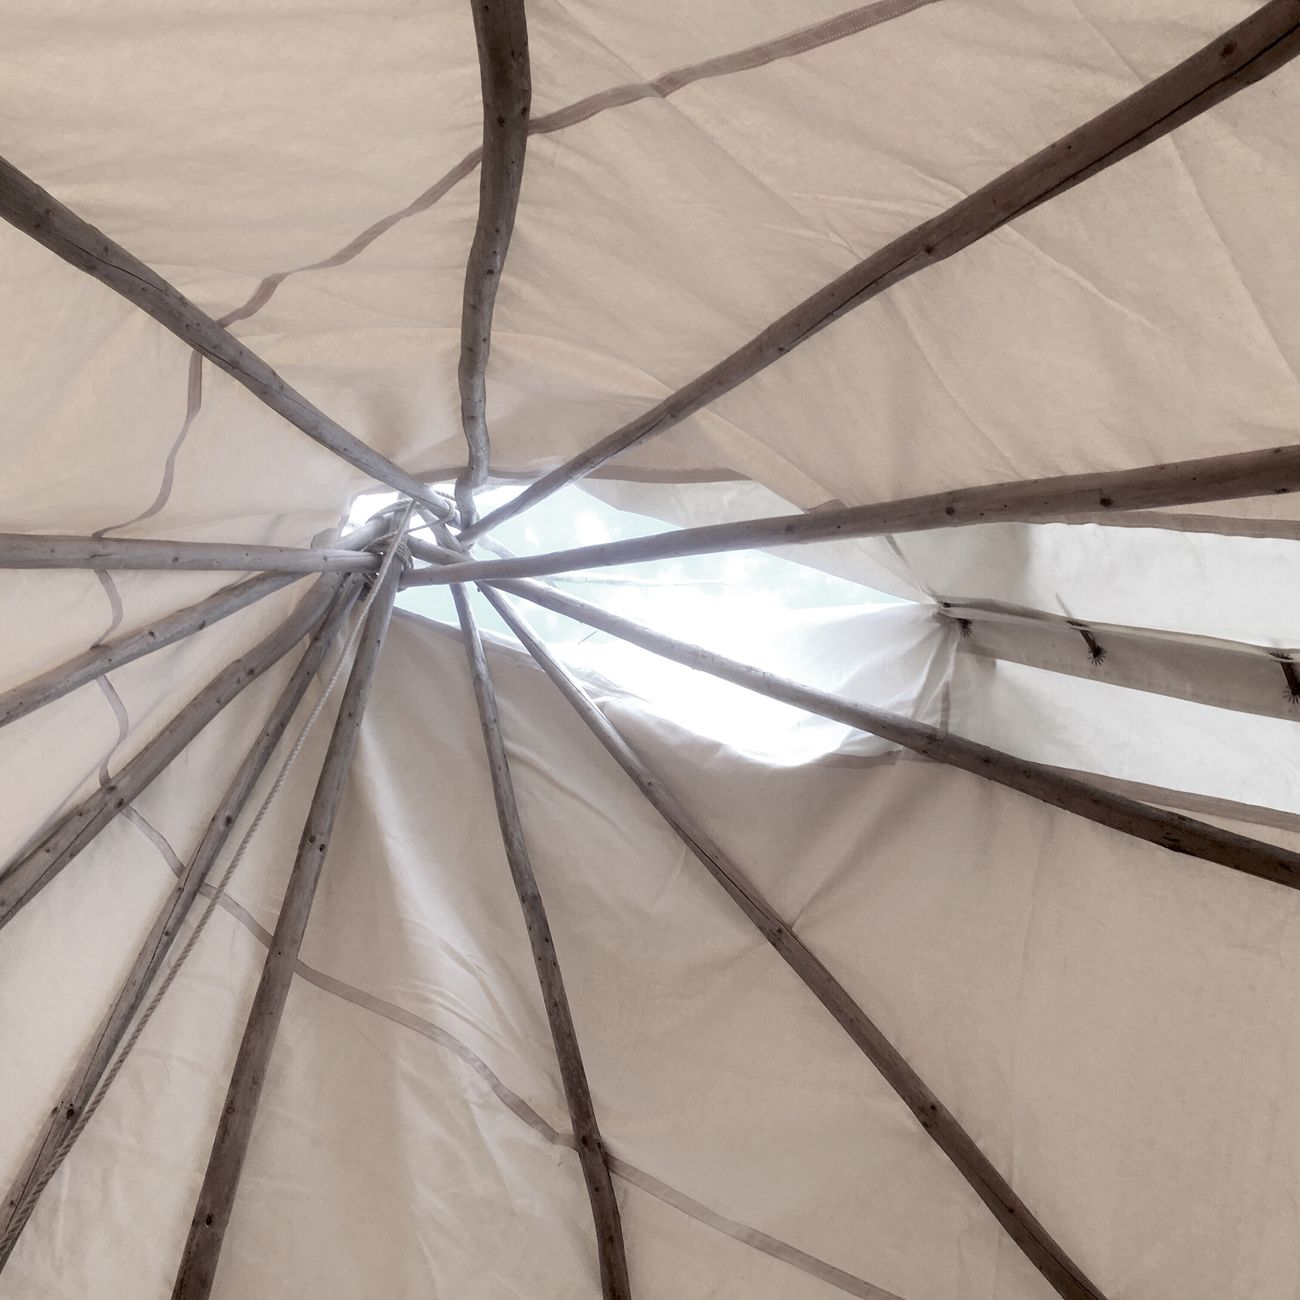 View from inside a tepee